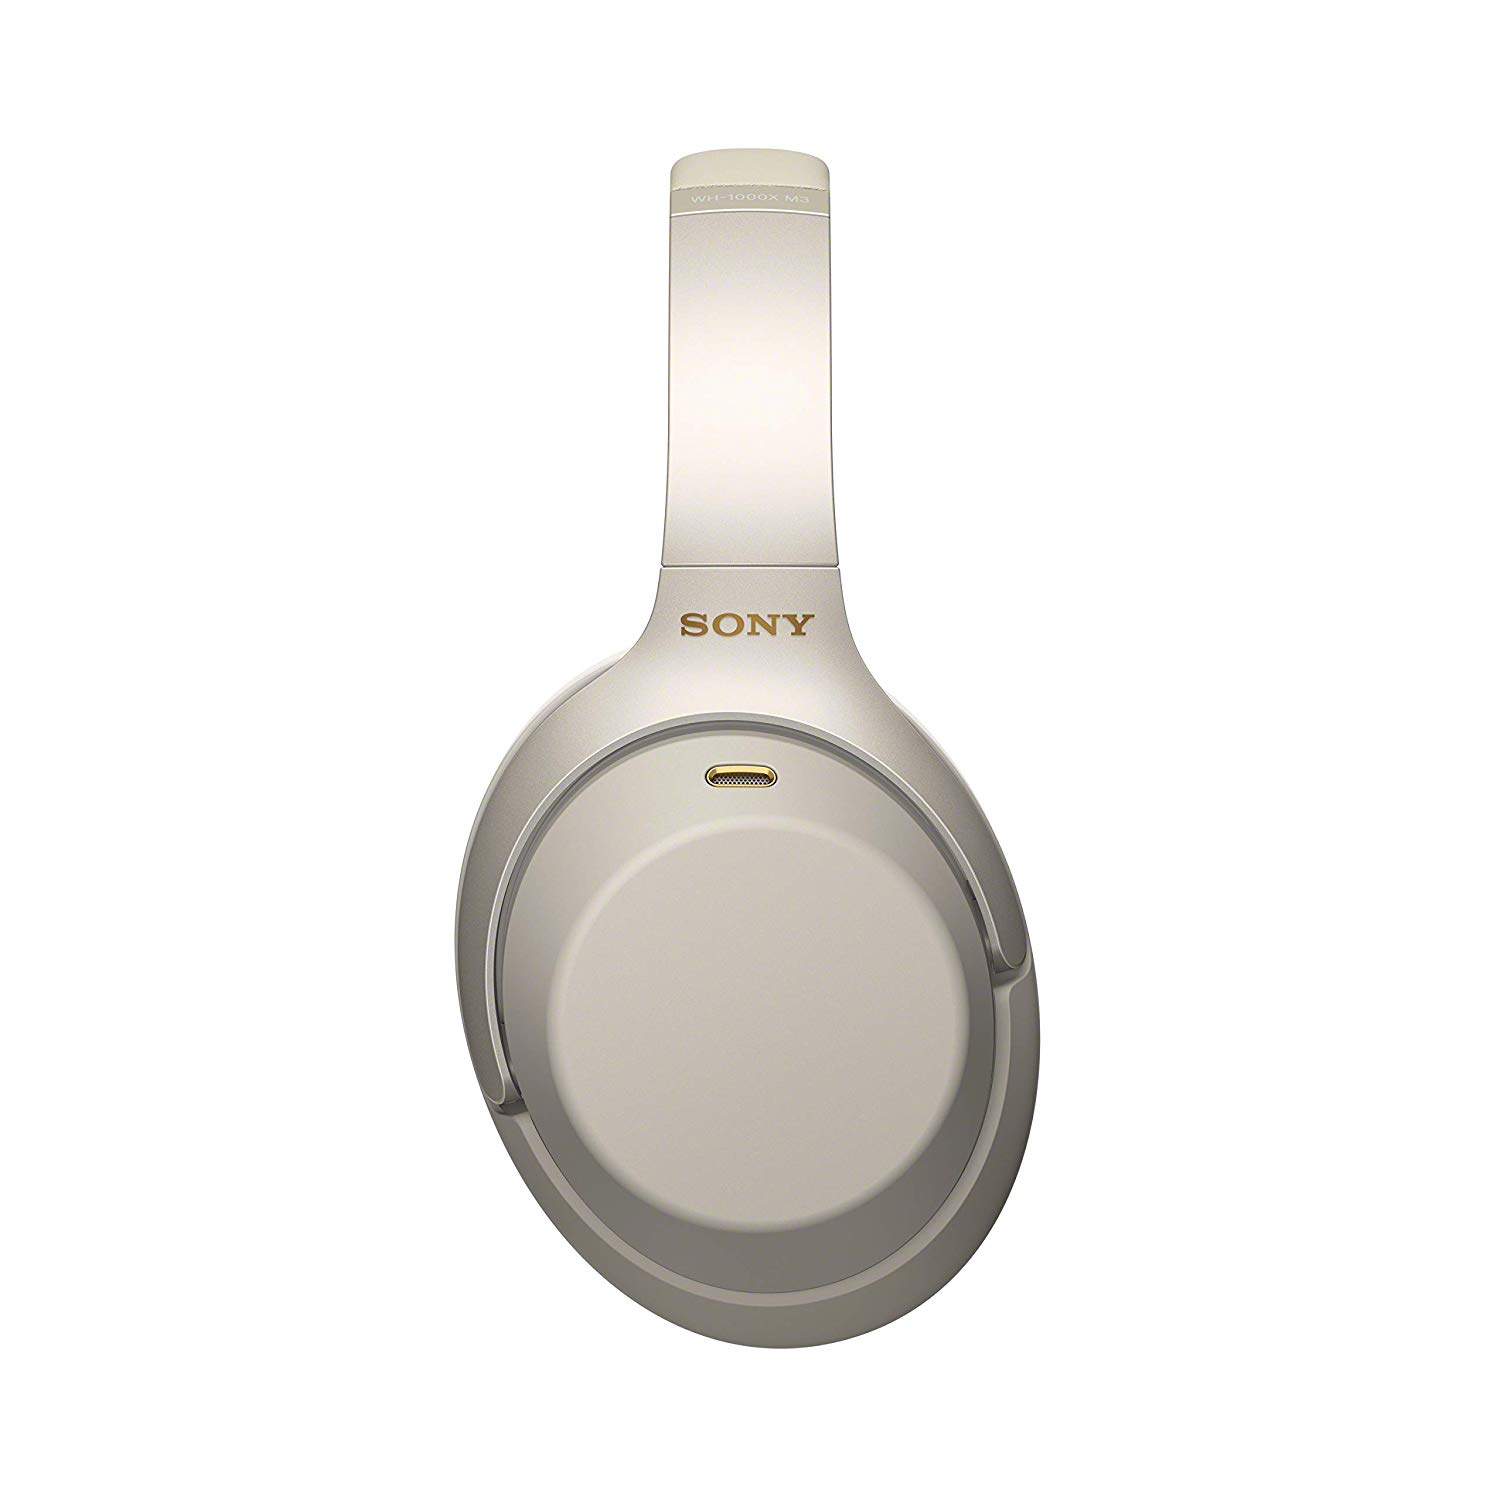 Sony-WH-1000XM3-Wireless-Noise-Canceling-Over-Ear-Headphones-w-Google-Assistant